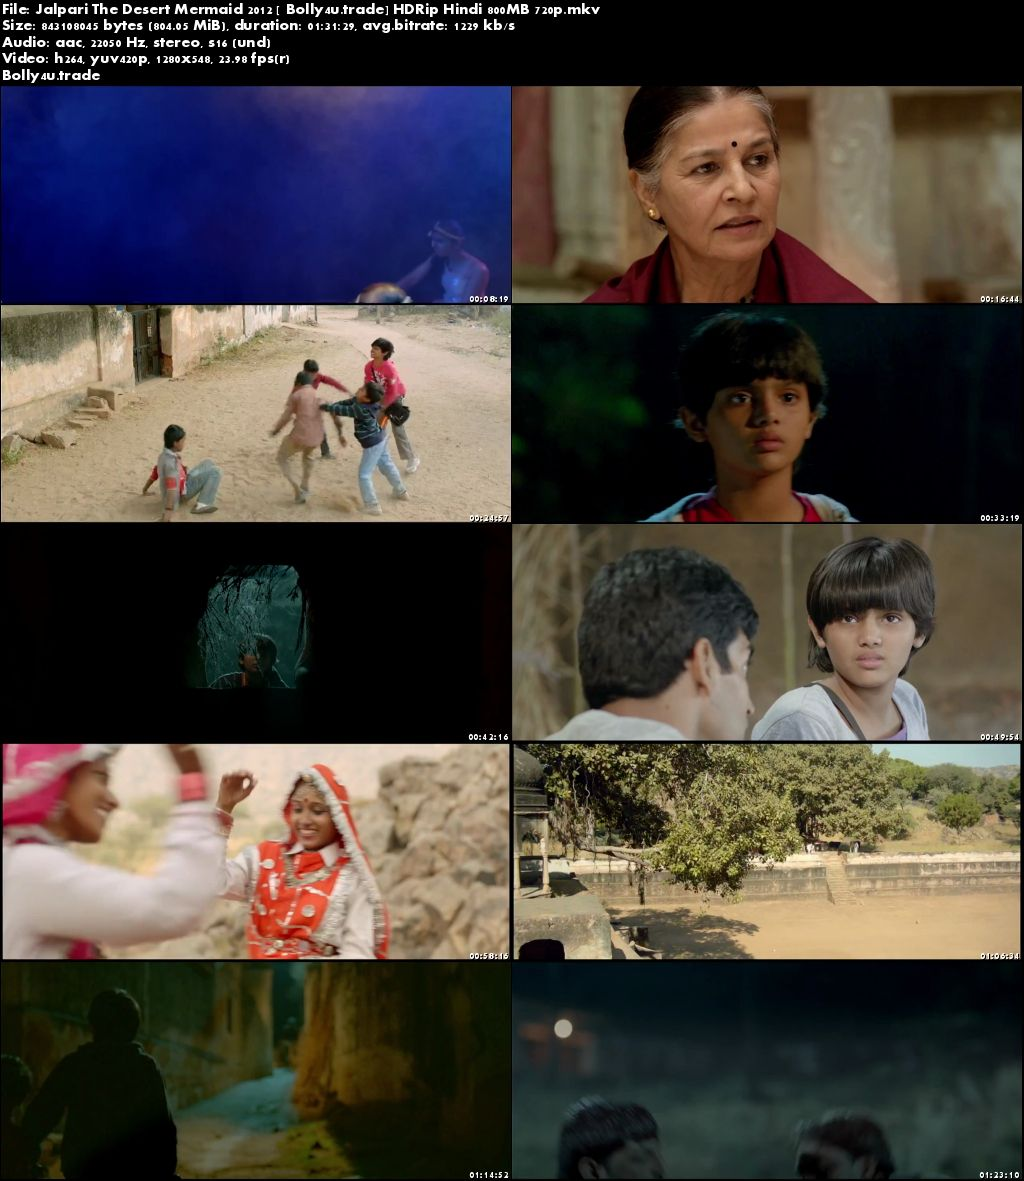 Jalpari The Desert Mermaid 2012 HDRip 280MB Hindi 480p